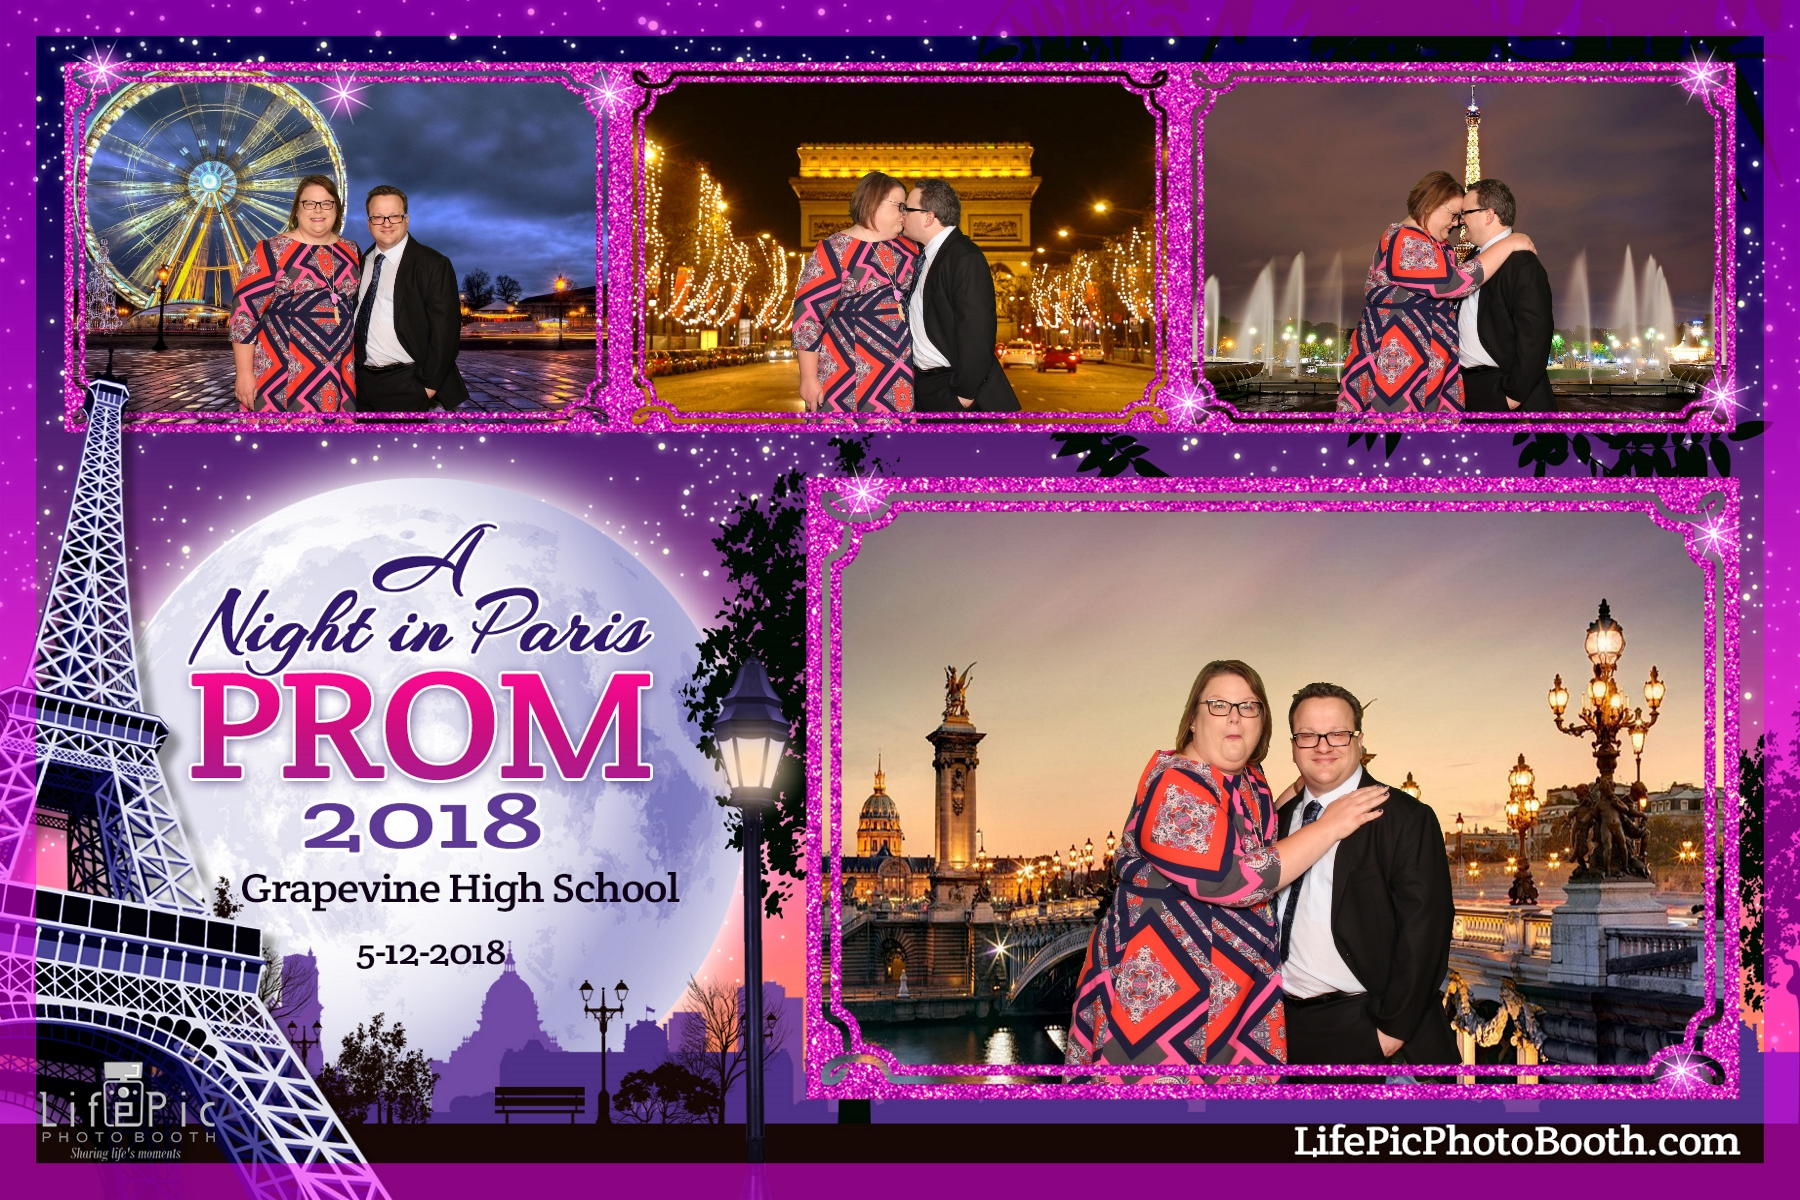 Grapevine High School Prom_2018-05-12_23